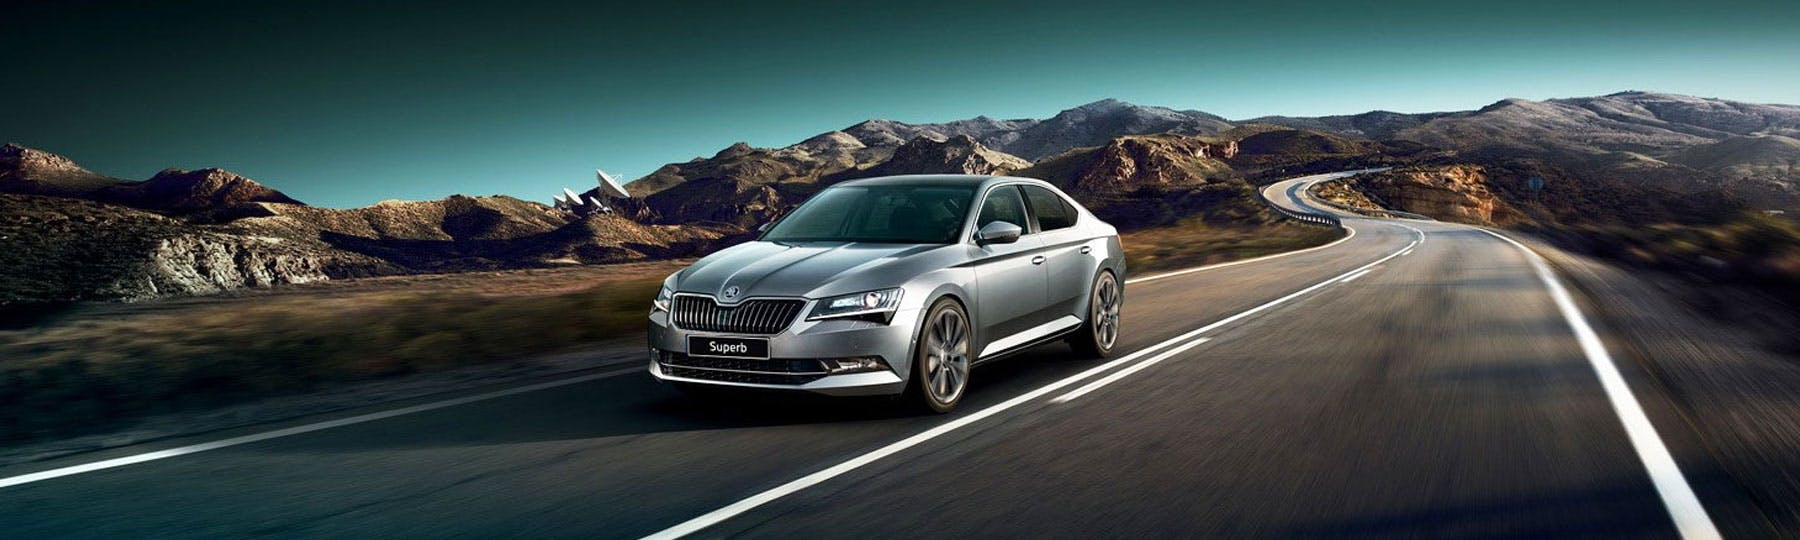 new Škoda superb hatch in maidstone, kent and southend, essex